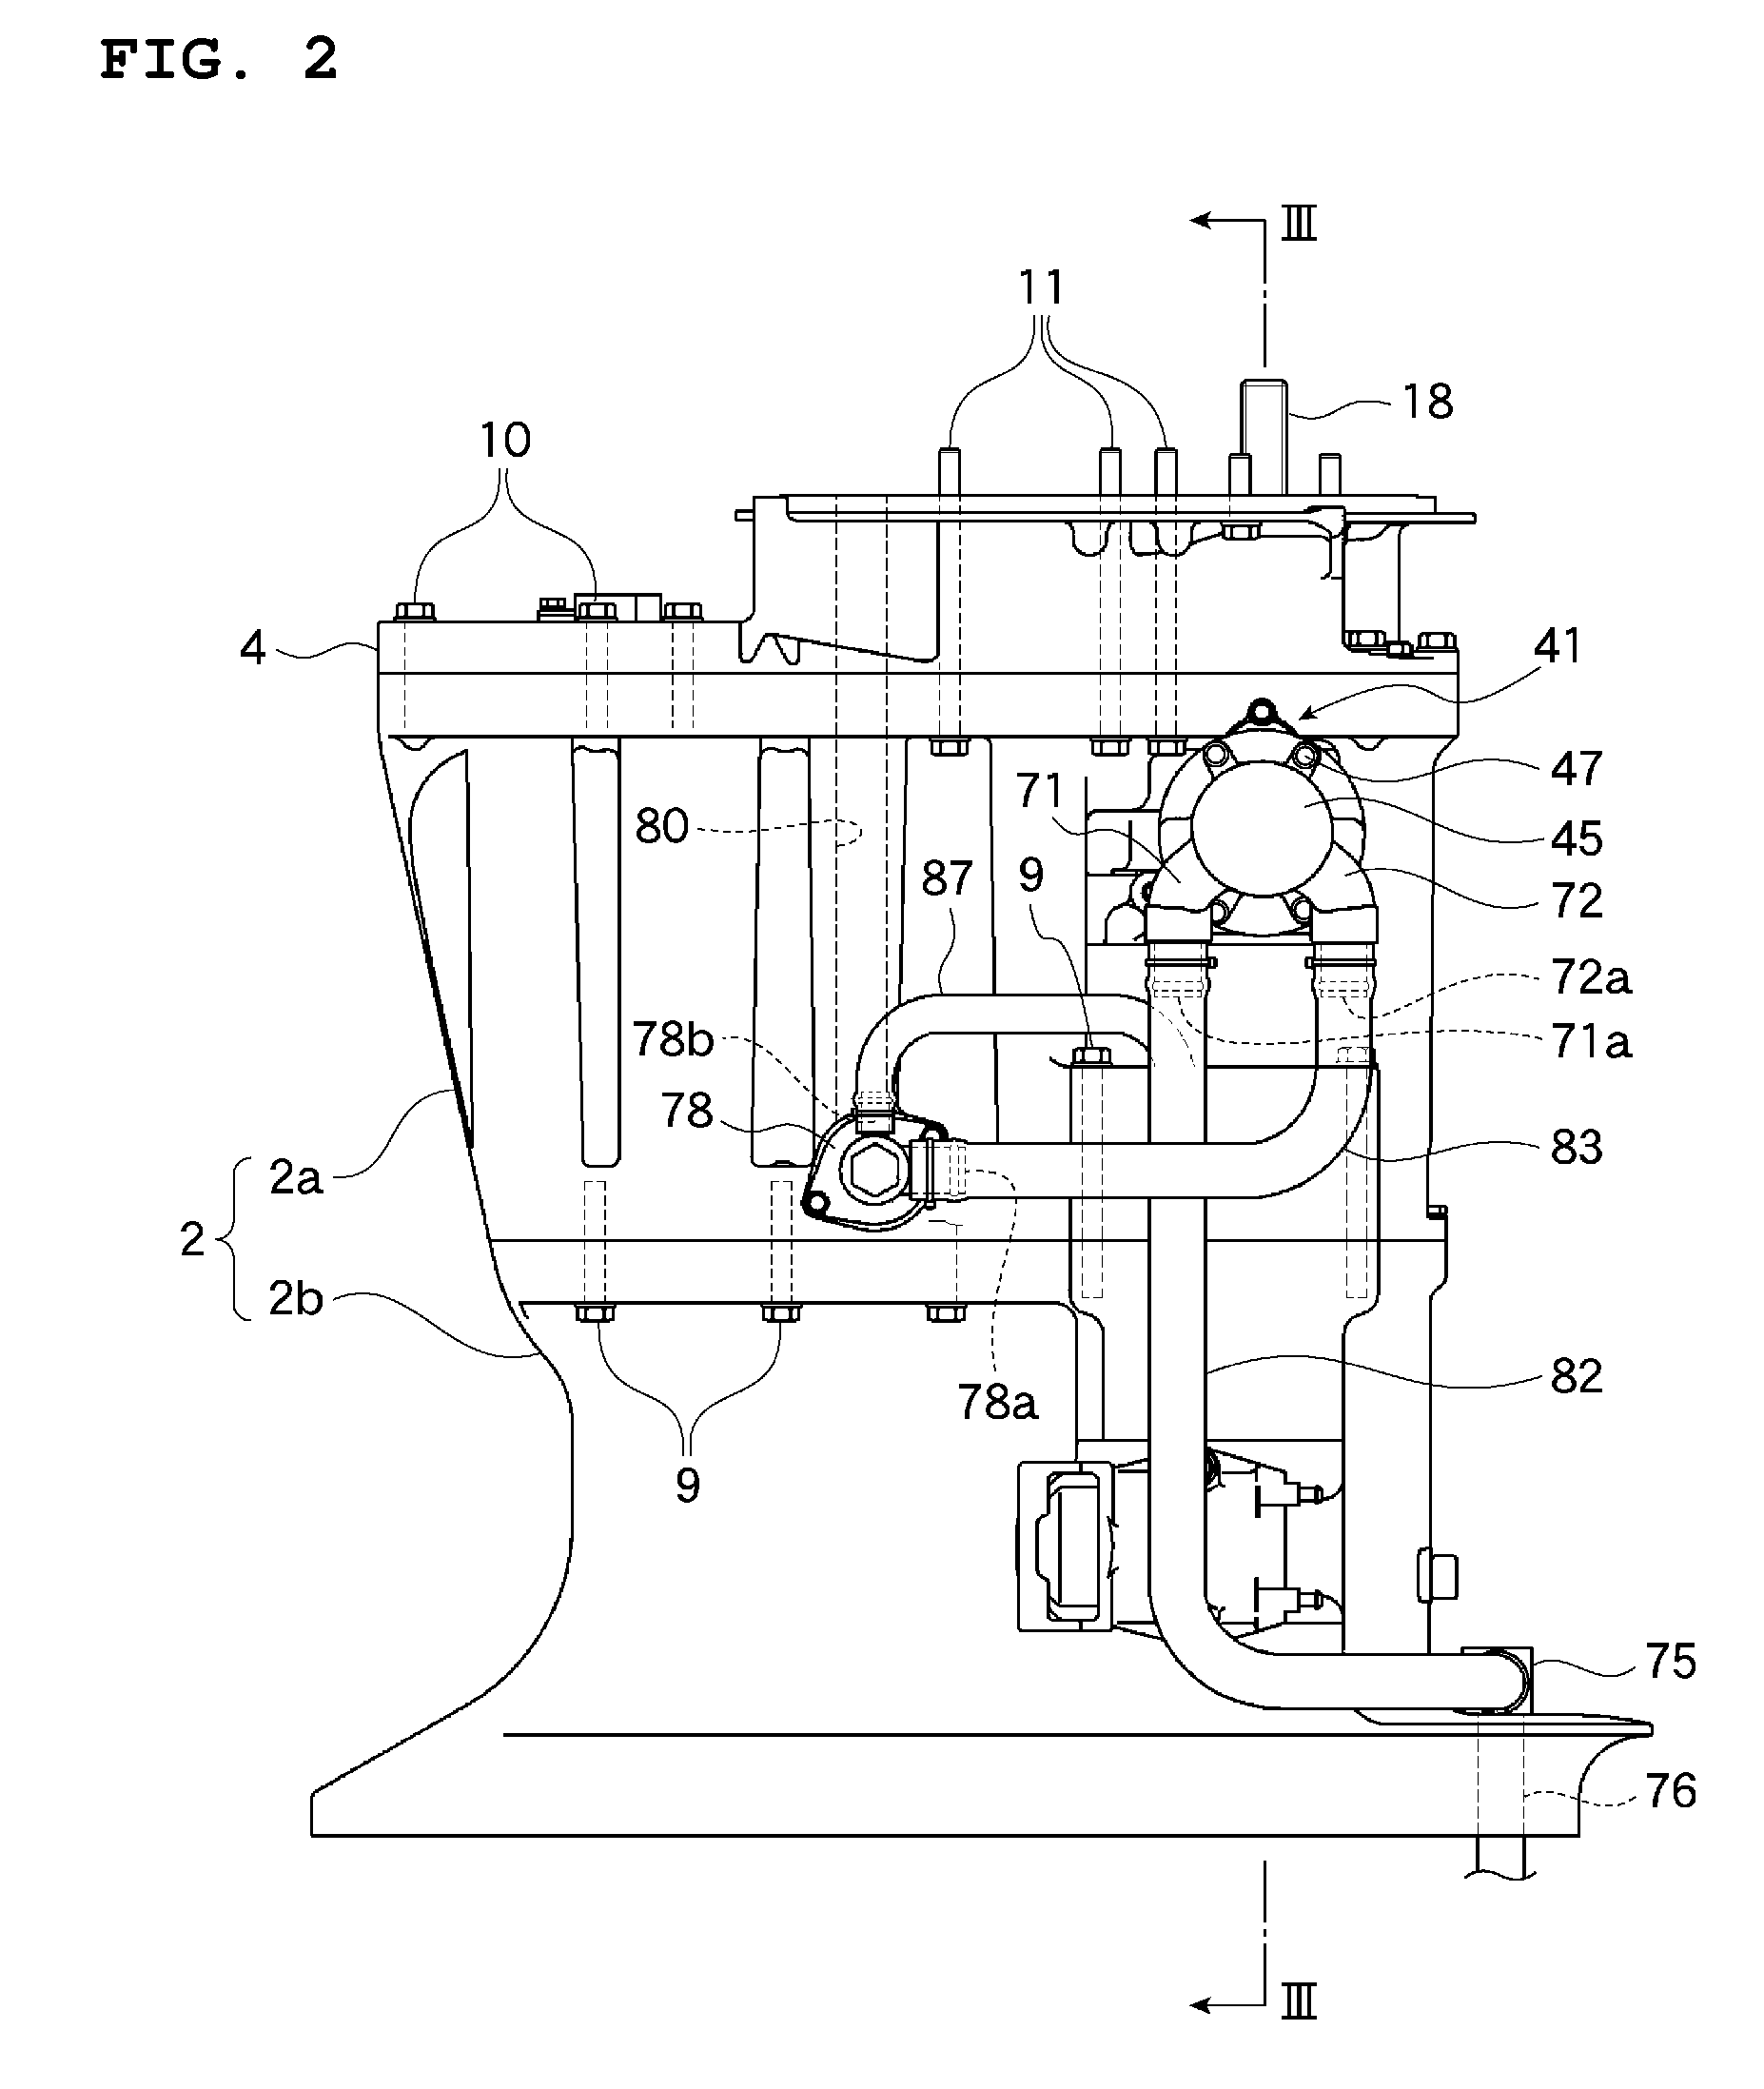 patent us20090163094 outboard motor google patentsMarine Transmission Diagrams As Well As Patent Us8715022 Marine Vessel #21